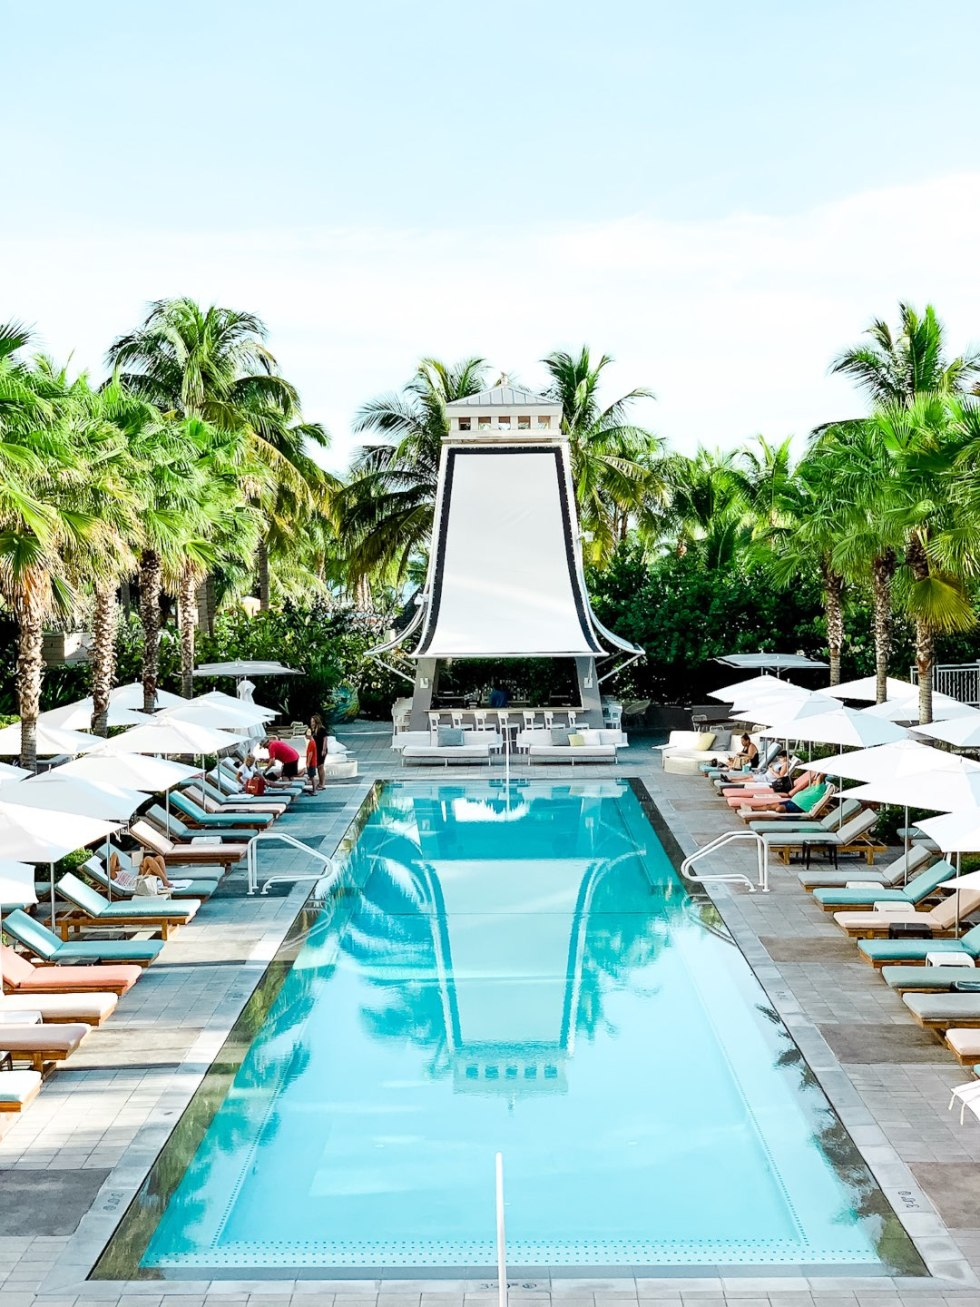 Warming Up in the Bahamas: the Best Things to Do at Baha Mar - I'm Fixin' To - @mbg0112 | Warming Up in the Bahamas: the Best Things to Do in Baha Mar by popular North Carolina travel blog, I'm Fixin' To: image of a Baha Mar swimming pool.